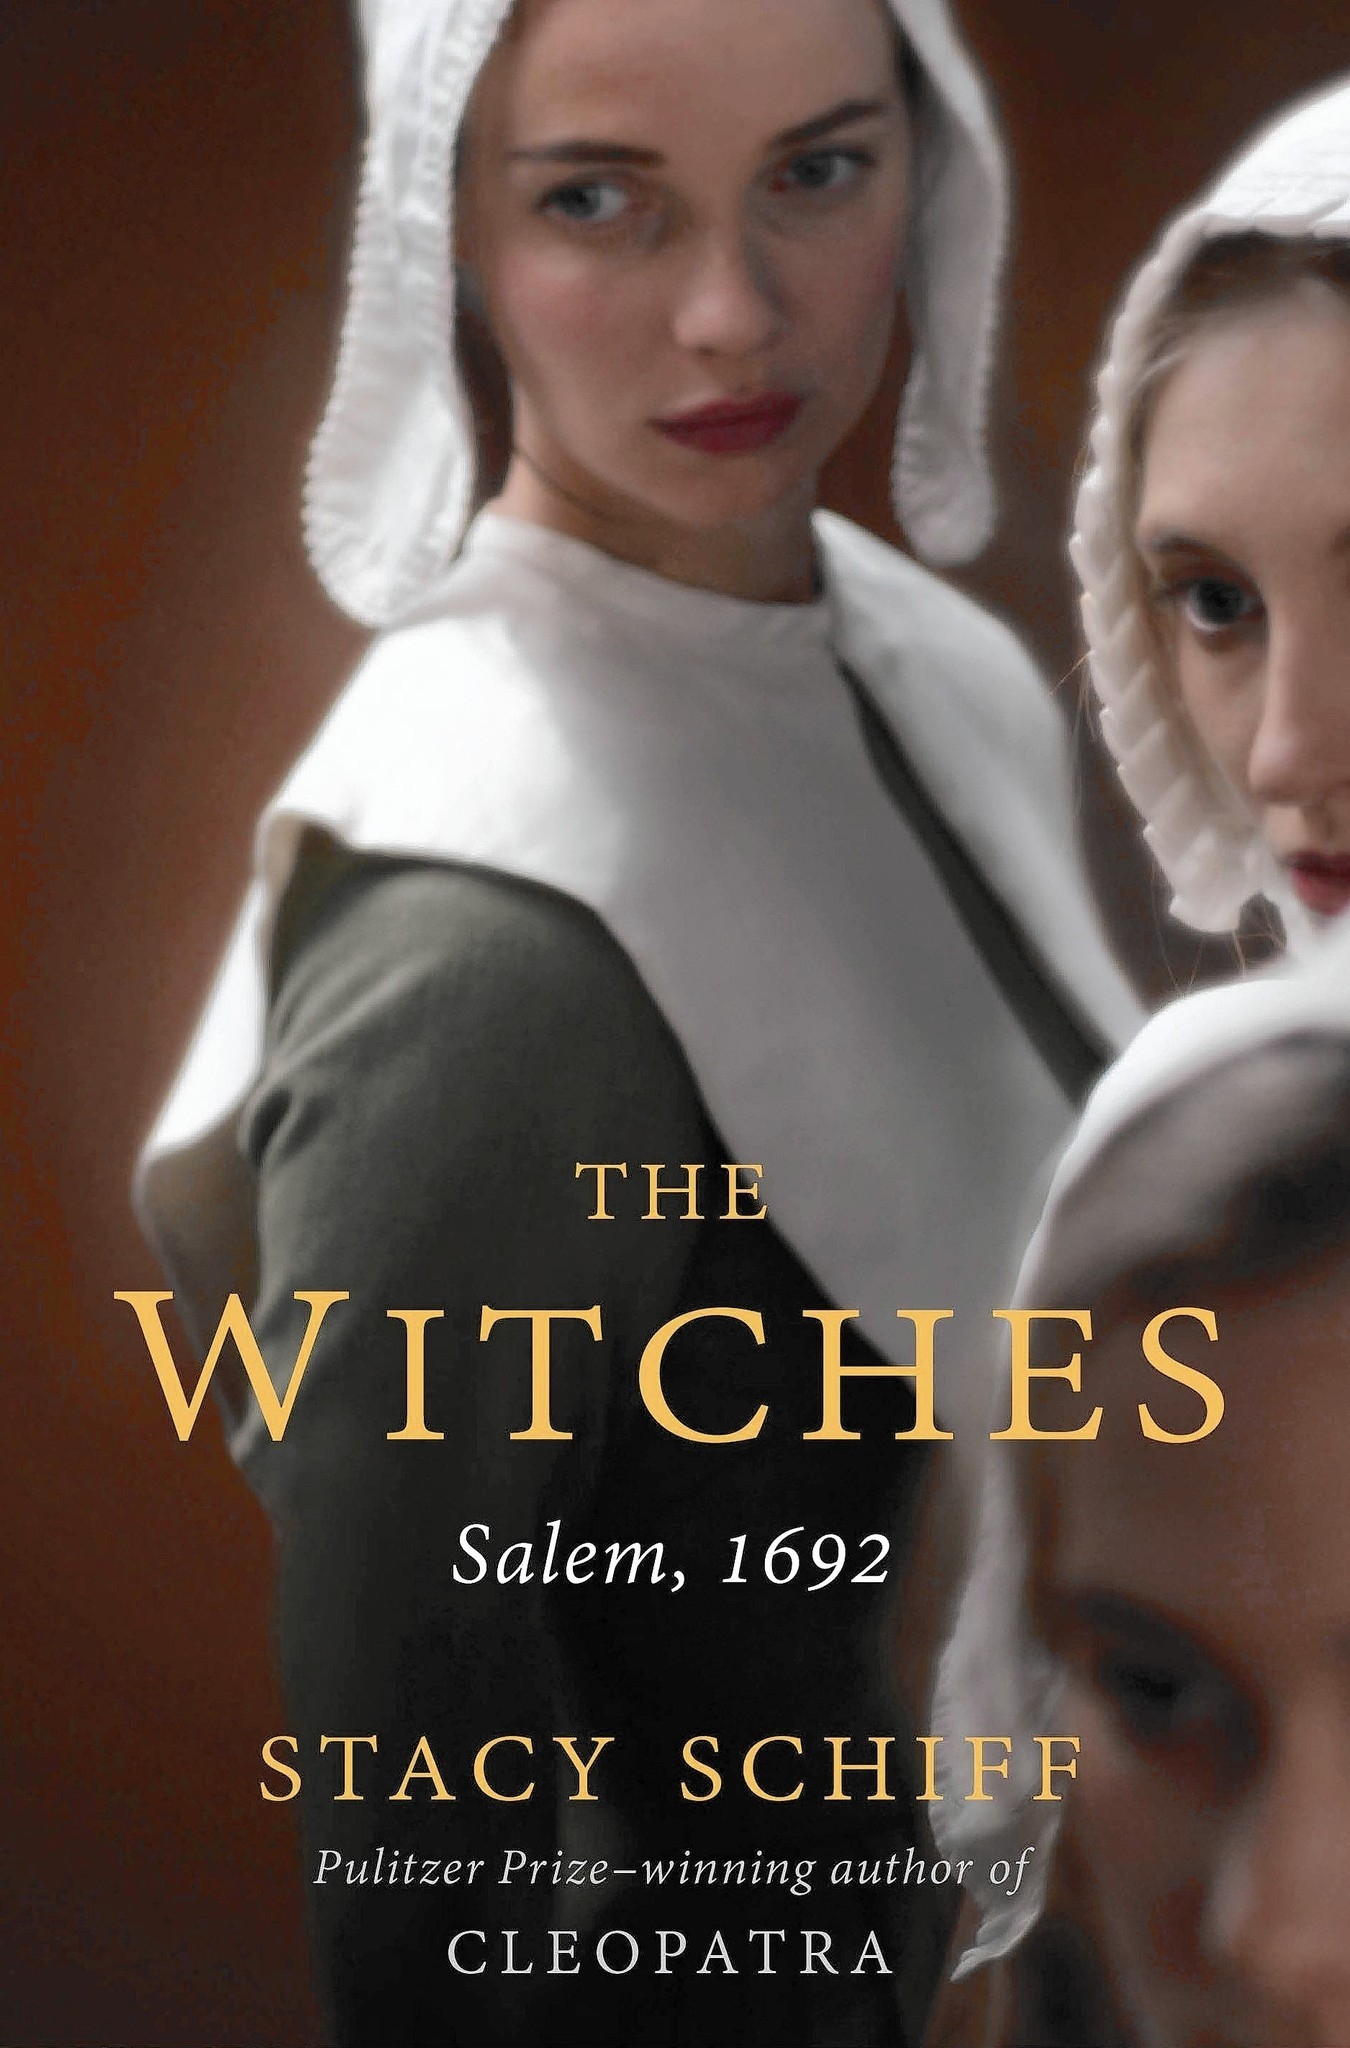 how the salem witch trials impacted american literature Arthur miller was one of the leading american playwrights of the  literature essays college  a tale of the salem witch trials that contains obvious analogies.